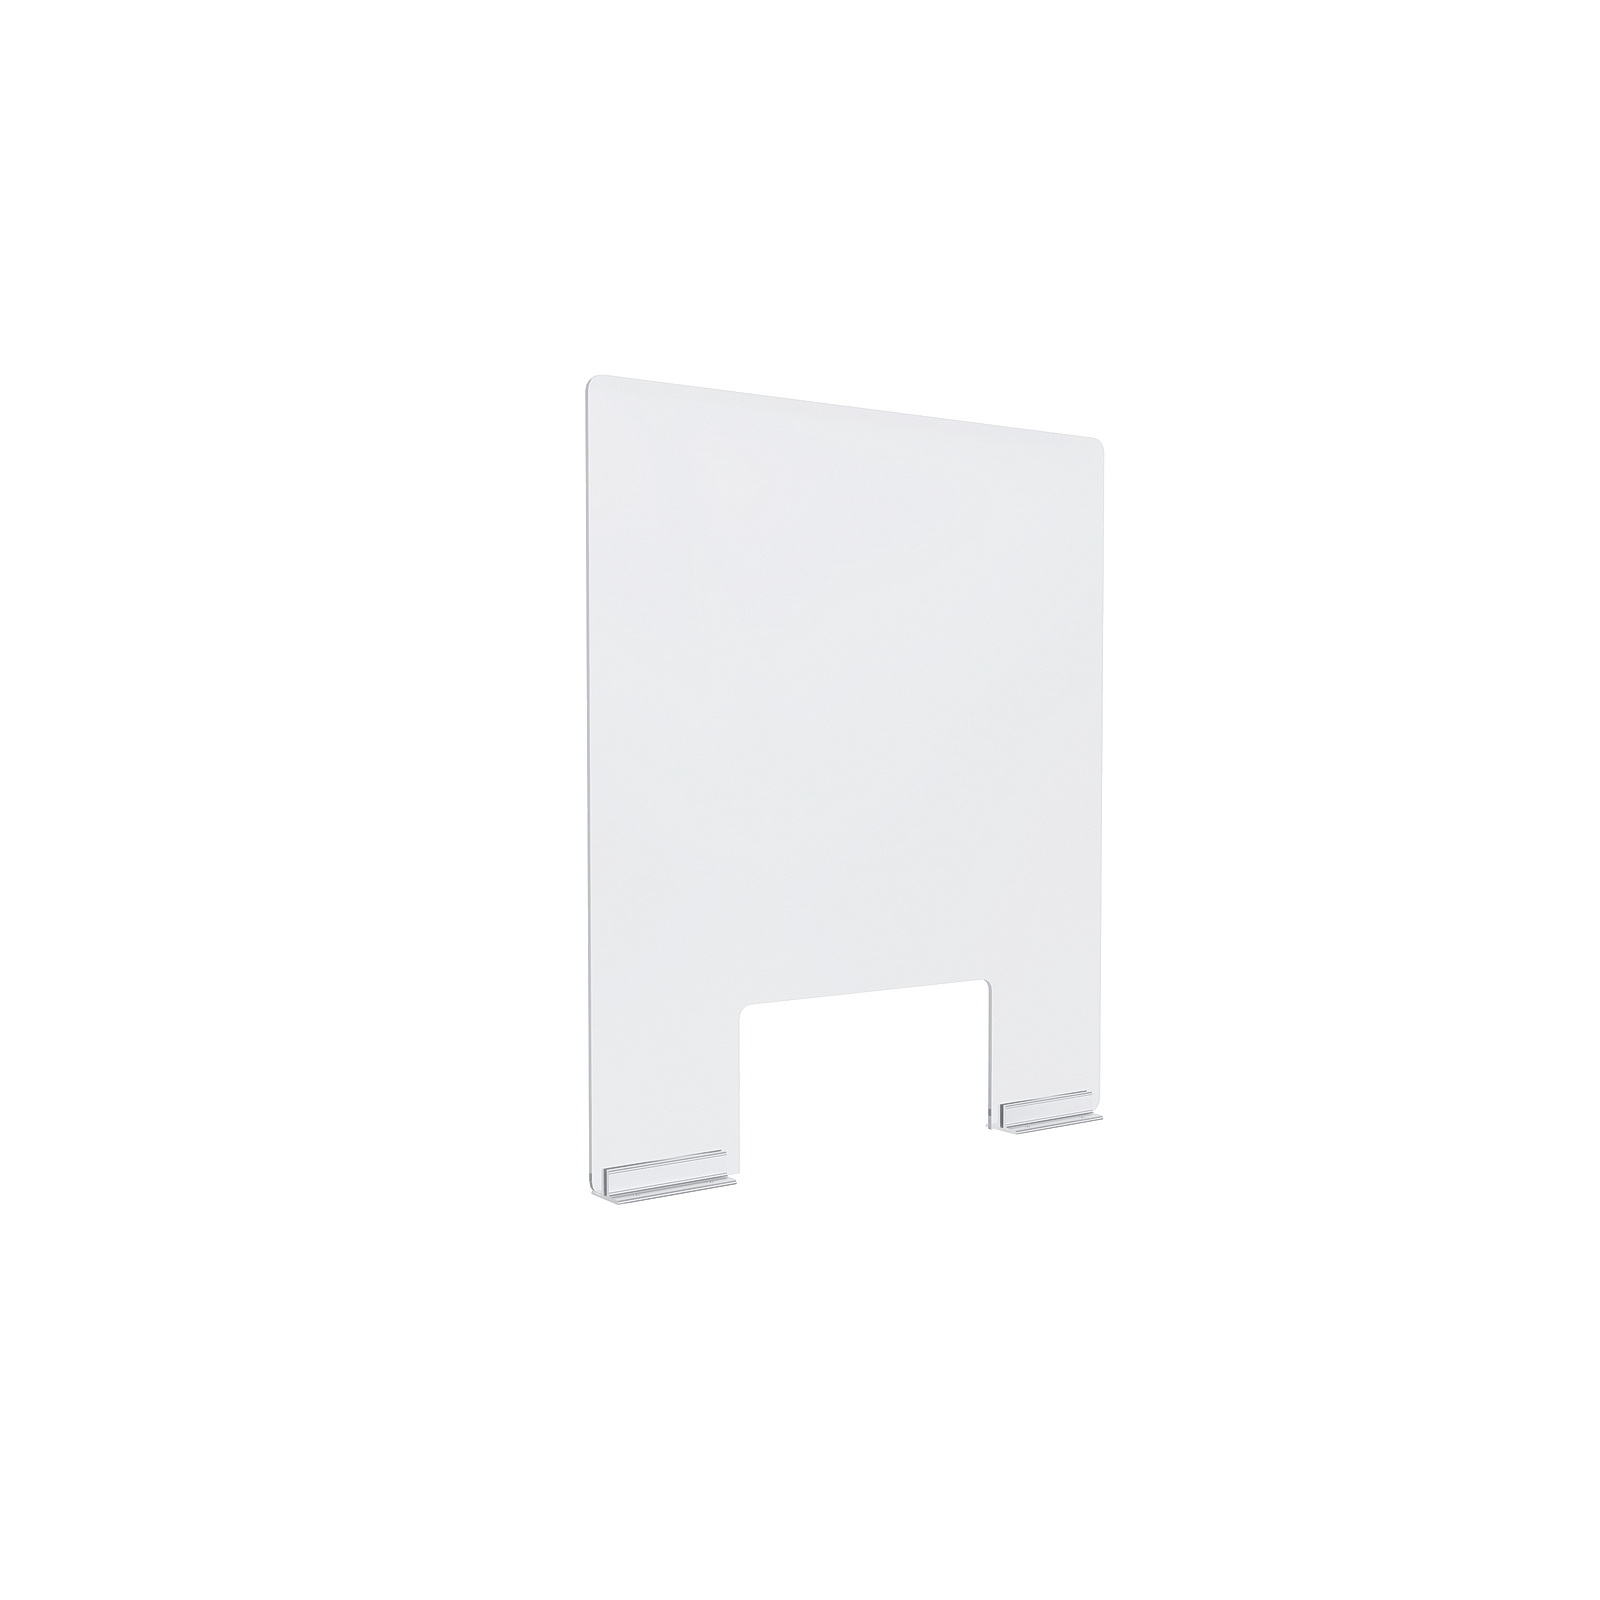 Clear Acrylic Sneeze Guard 20'' Wide x 23-1/2'' Tall (10'' x 5'' Cut Out), with (2) 4'' Clear Anodized Aluminum Channel Mounts